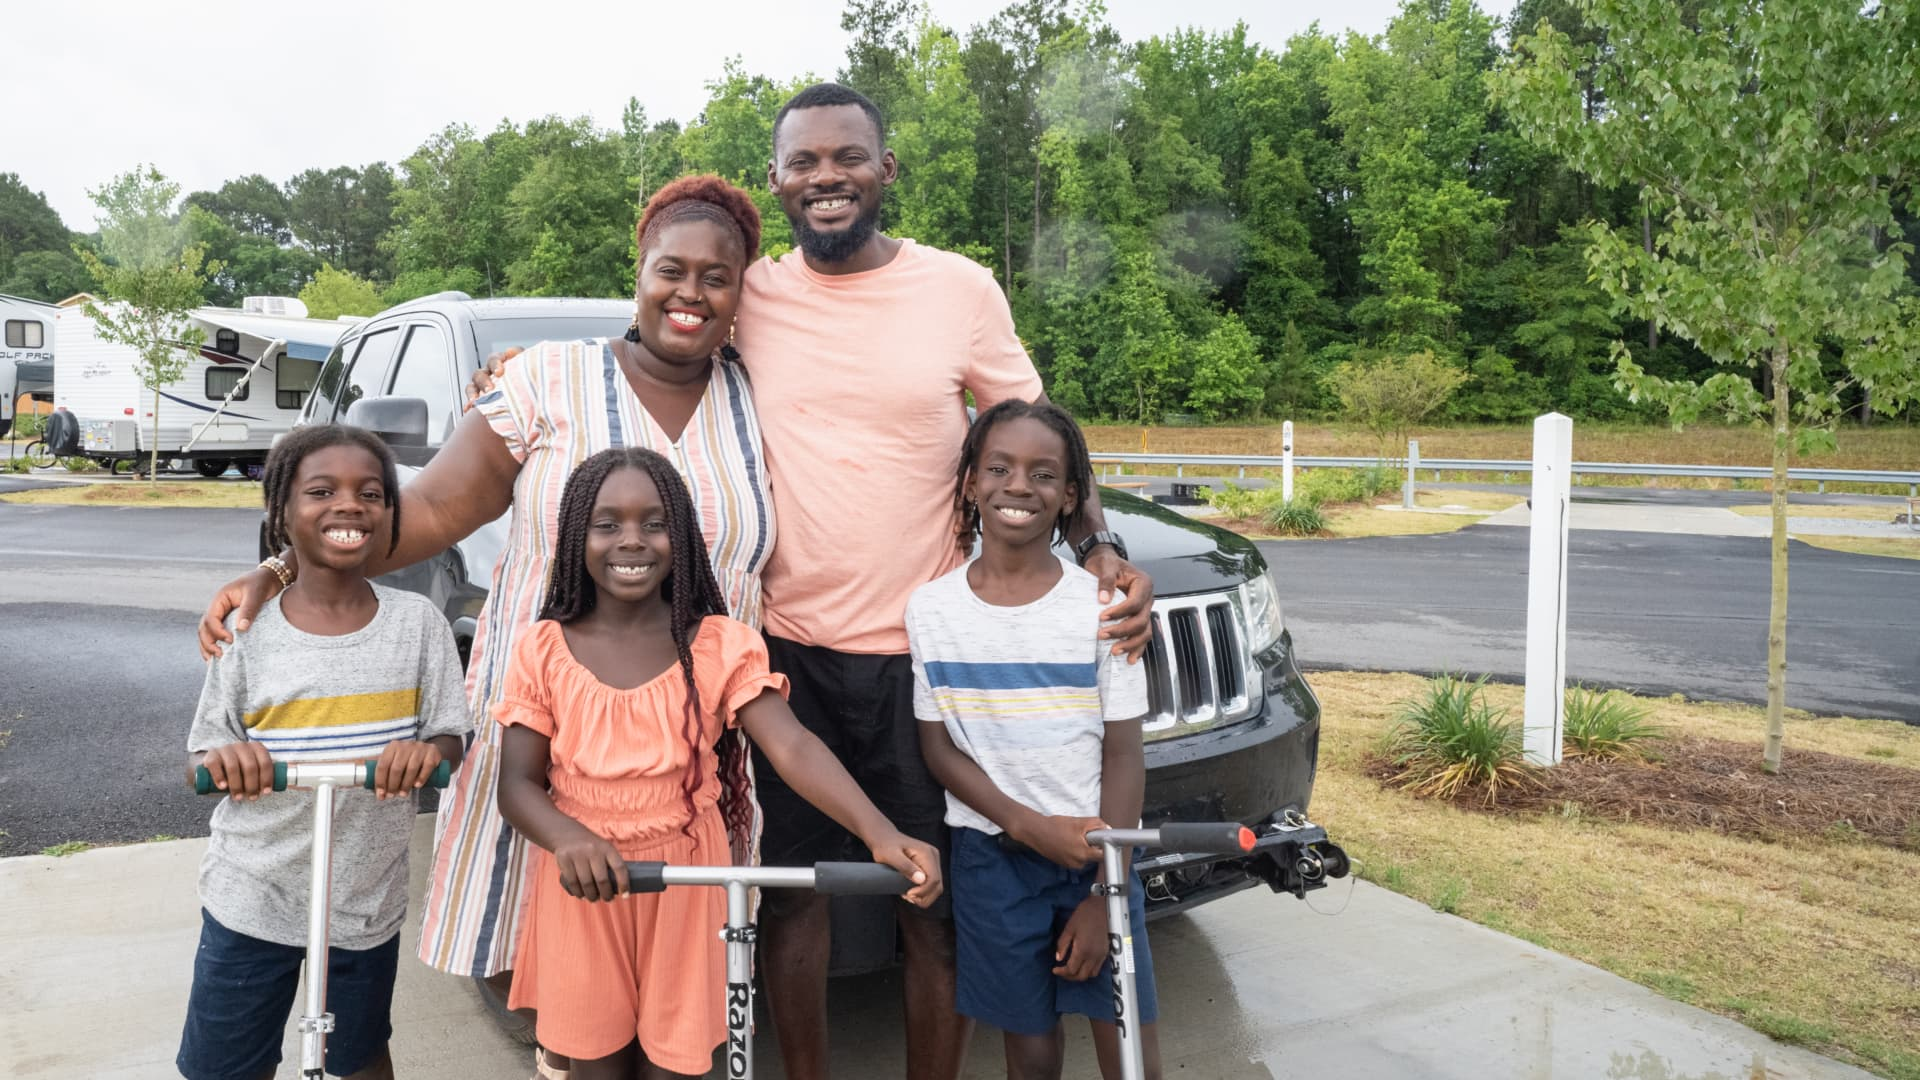 Karen and Sylvester Akpan with their son, Aiden (L), niece, Avery, and nephew, Ethan.